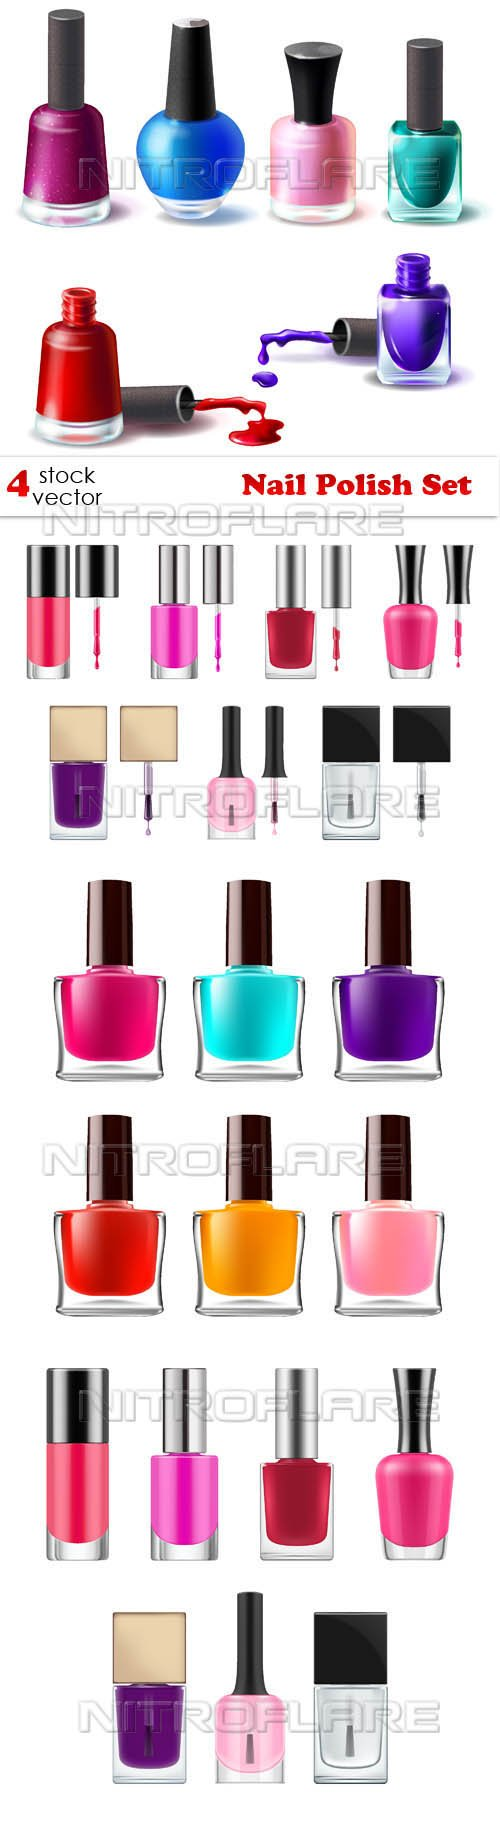 Vectors - Nail Polish Set